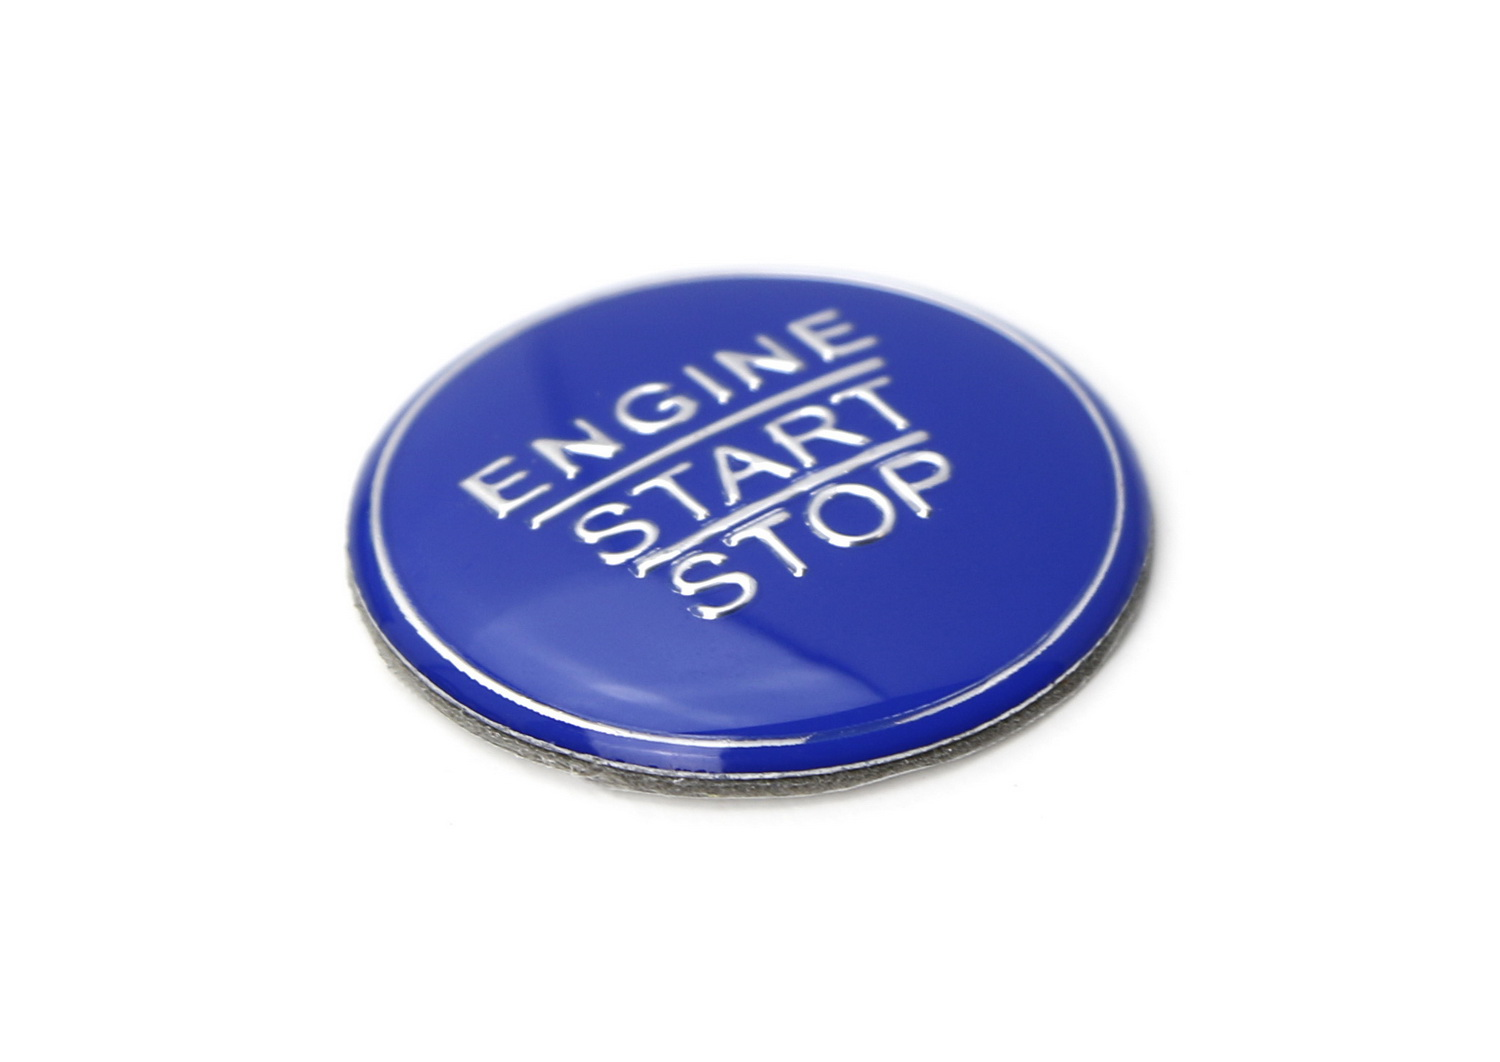 Gloss Blue Keyless Engine Push Start Button Cover For Toyota Camry Tacoma Prius Avalon Mirai etc w//Push Start Engine On//Off Feature 1 iJDMTOY